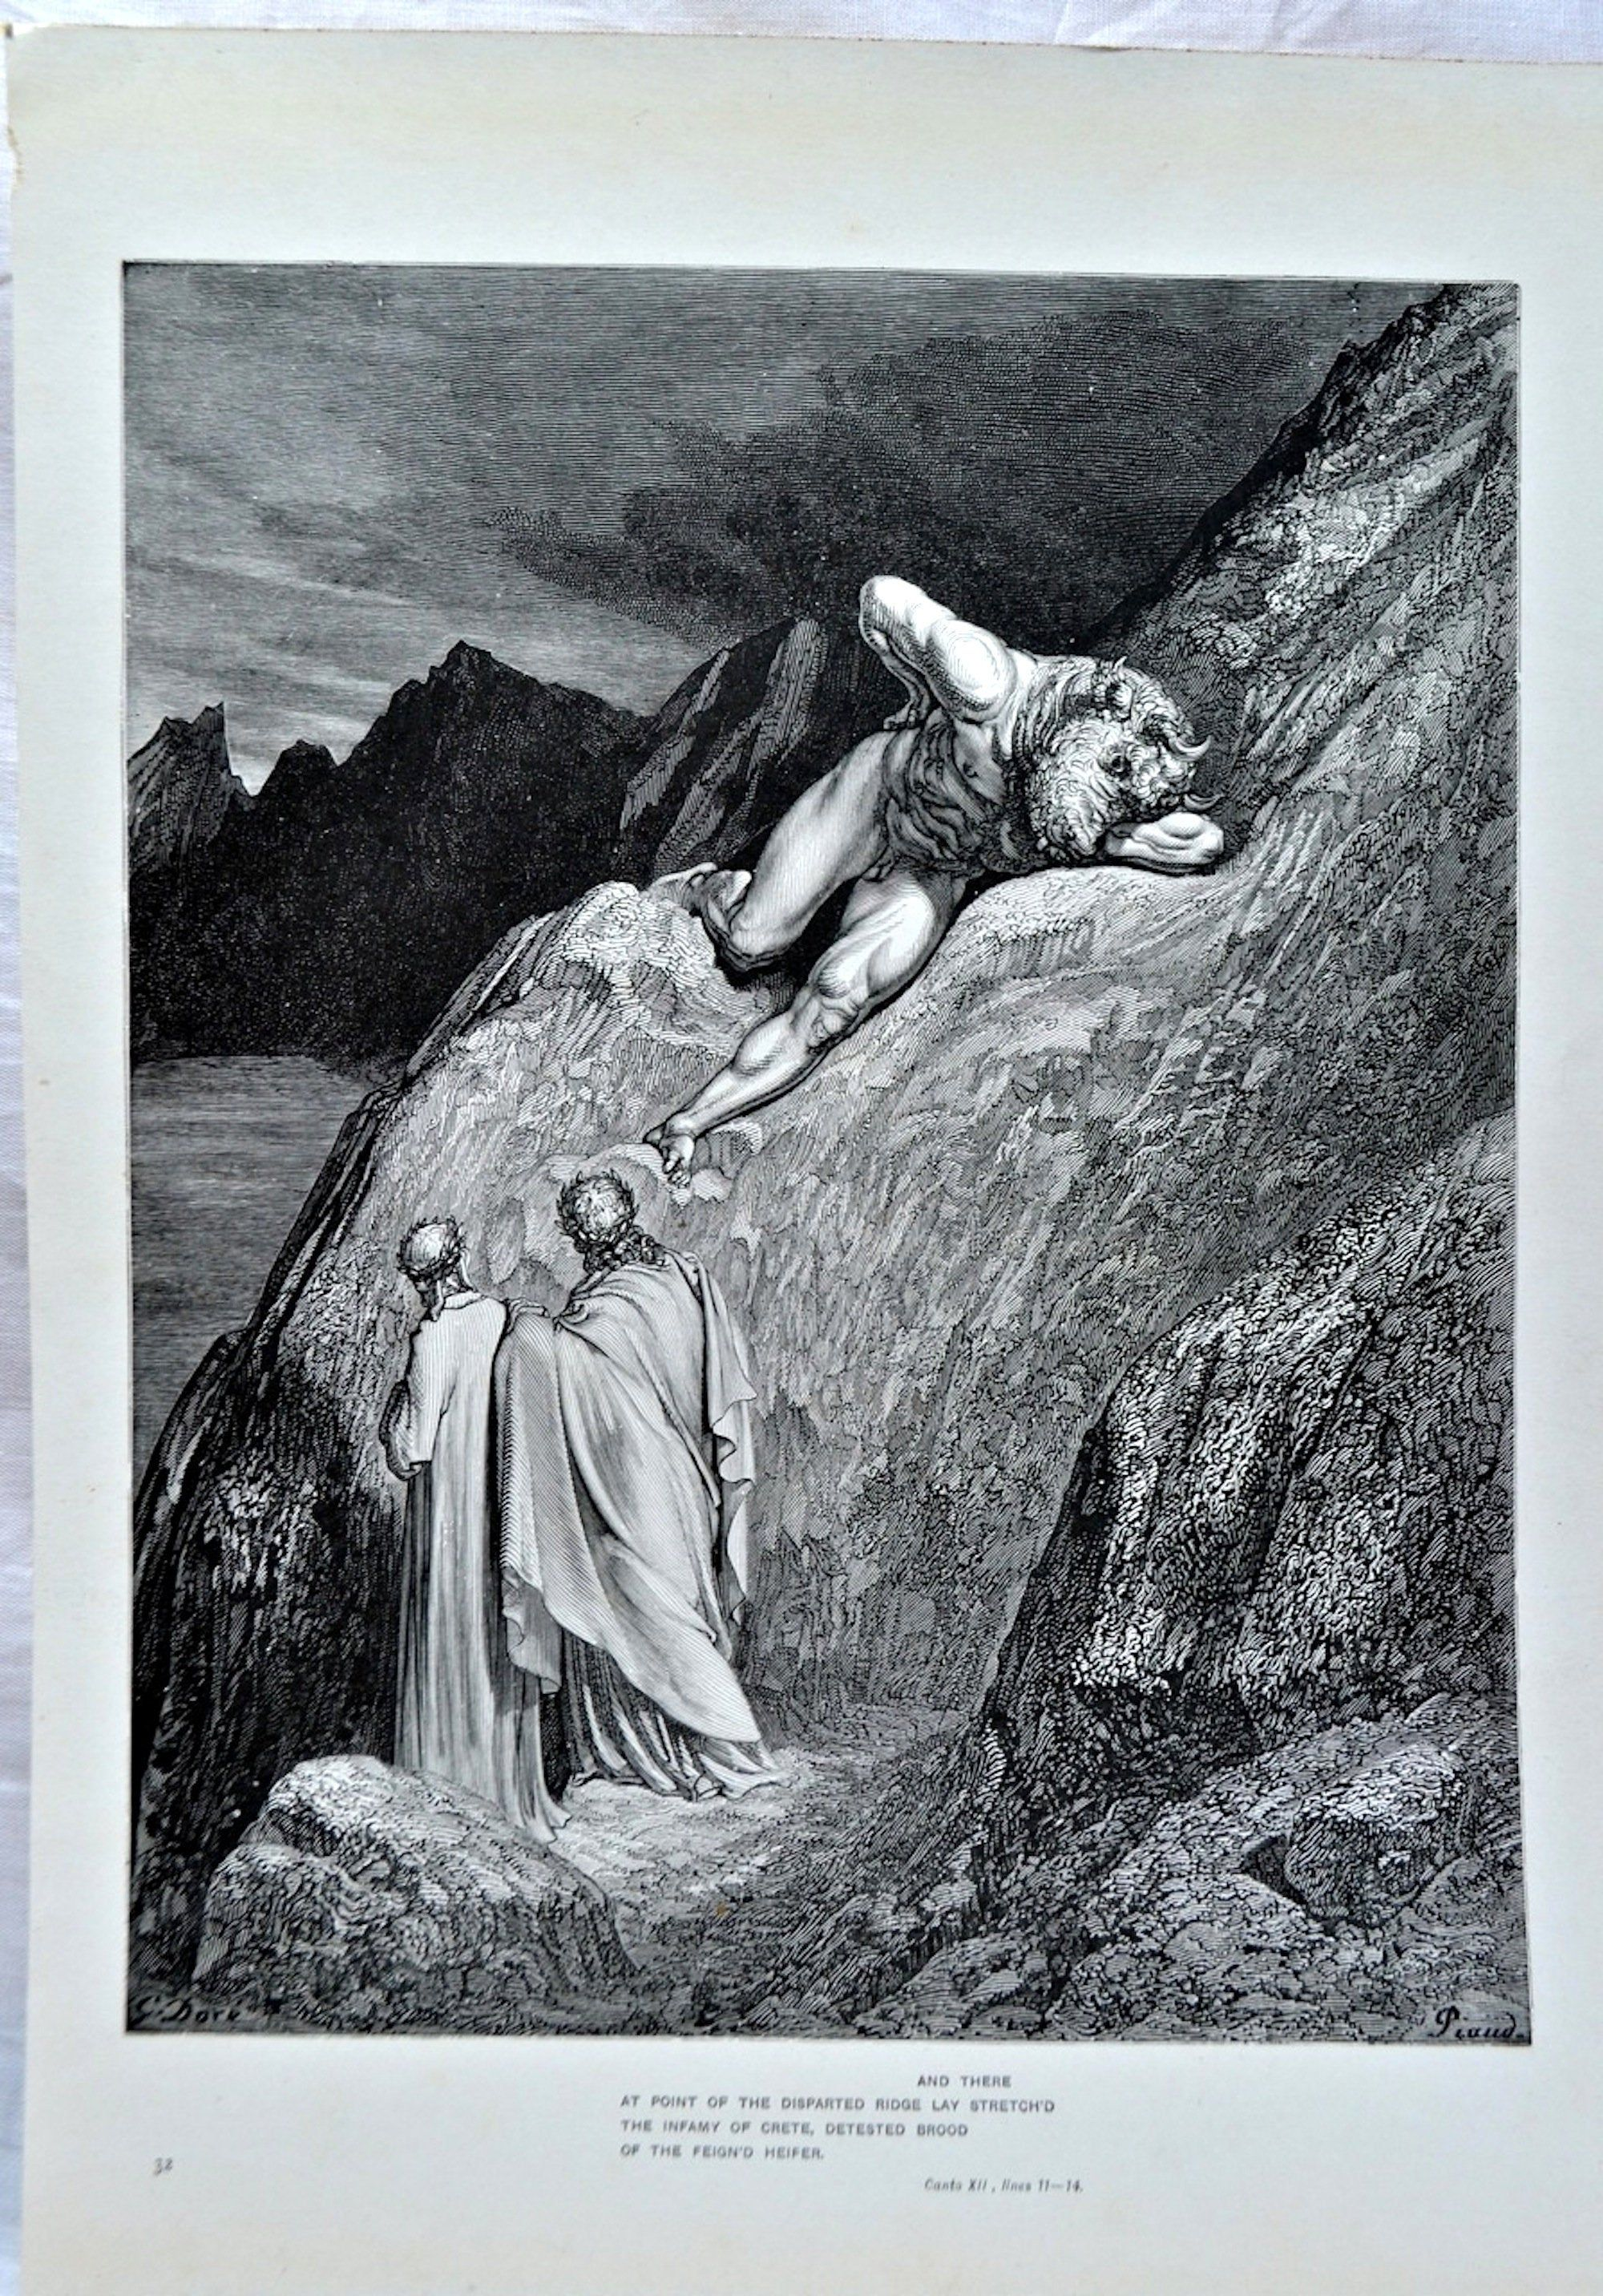 Gustave dore antique engraving 1903 from book illustration